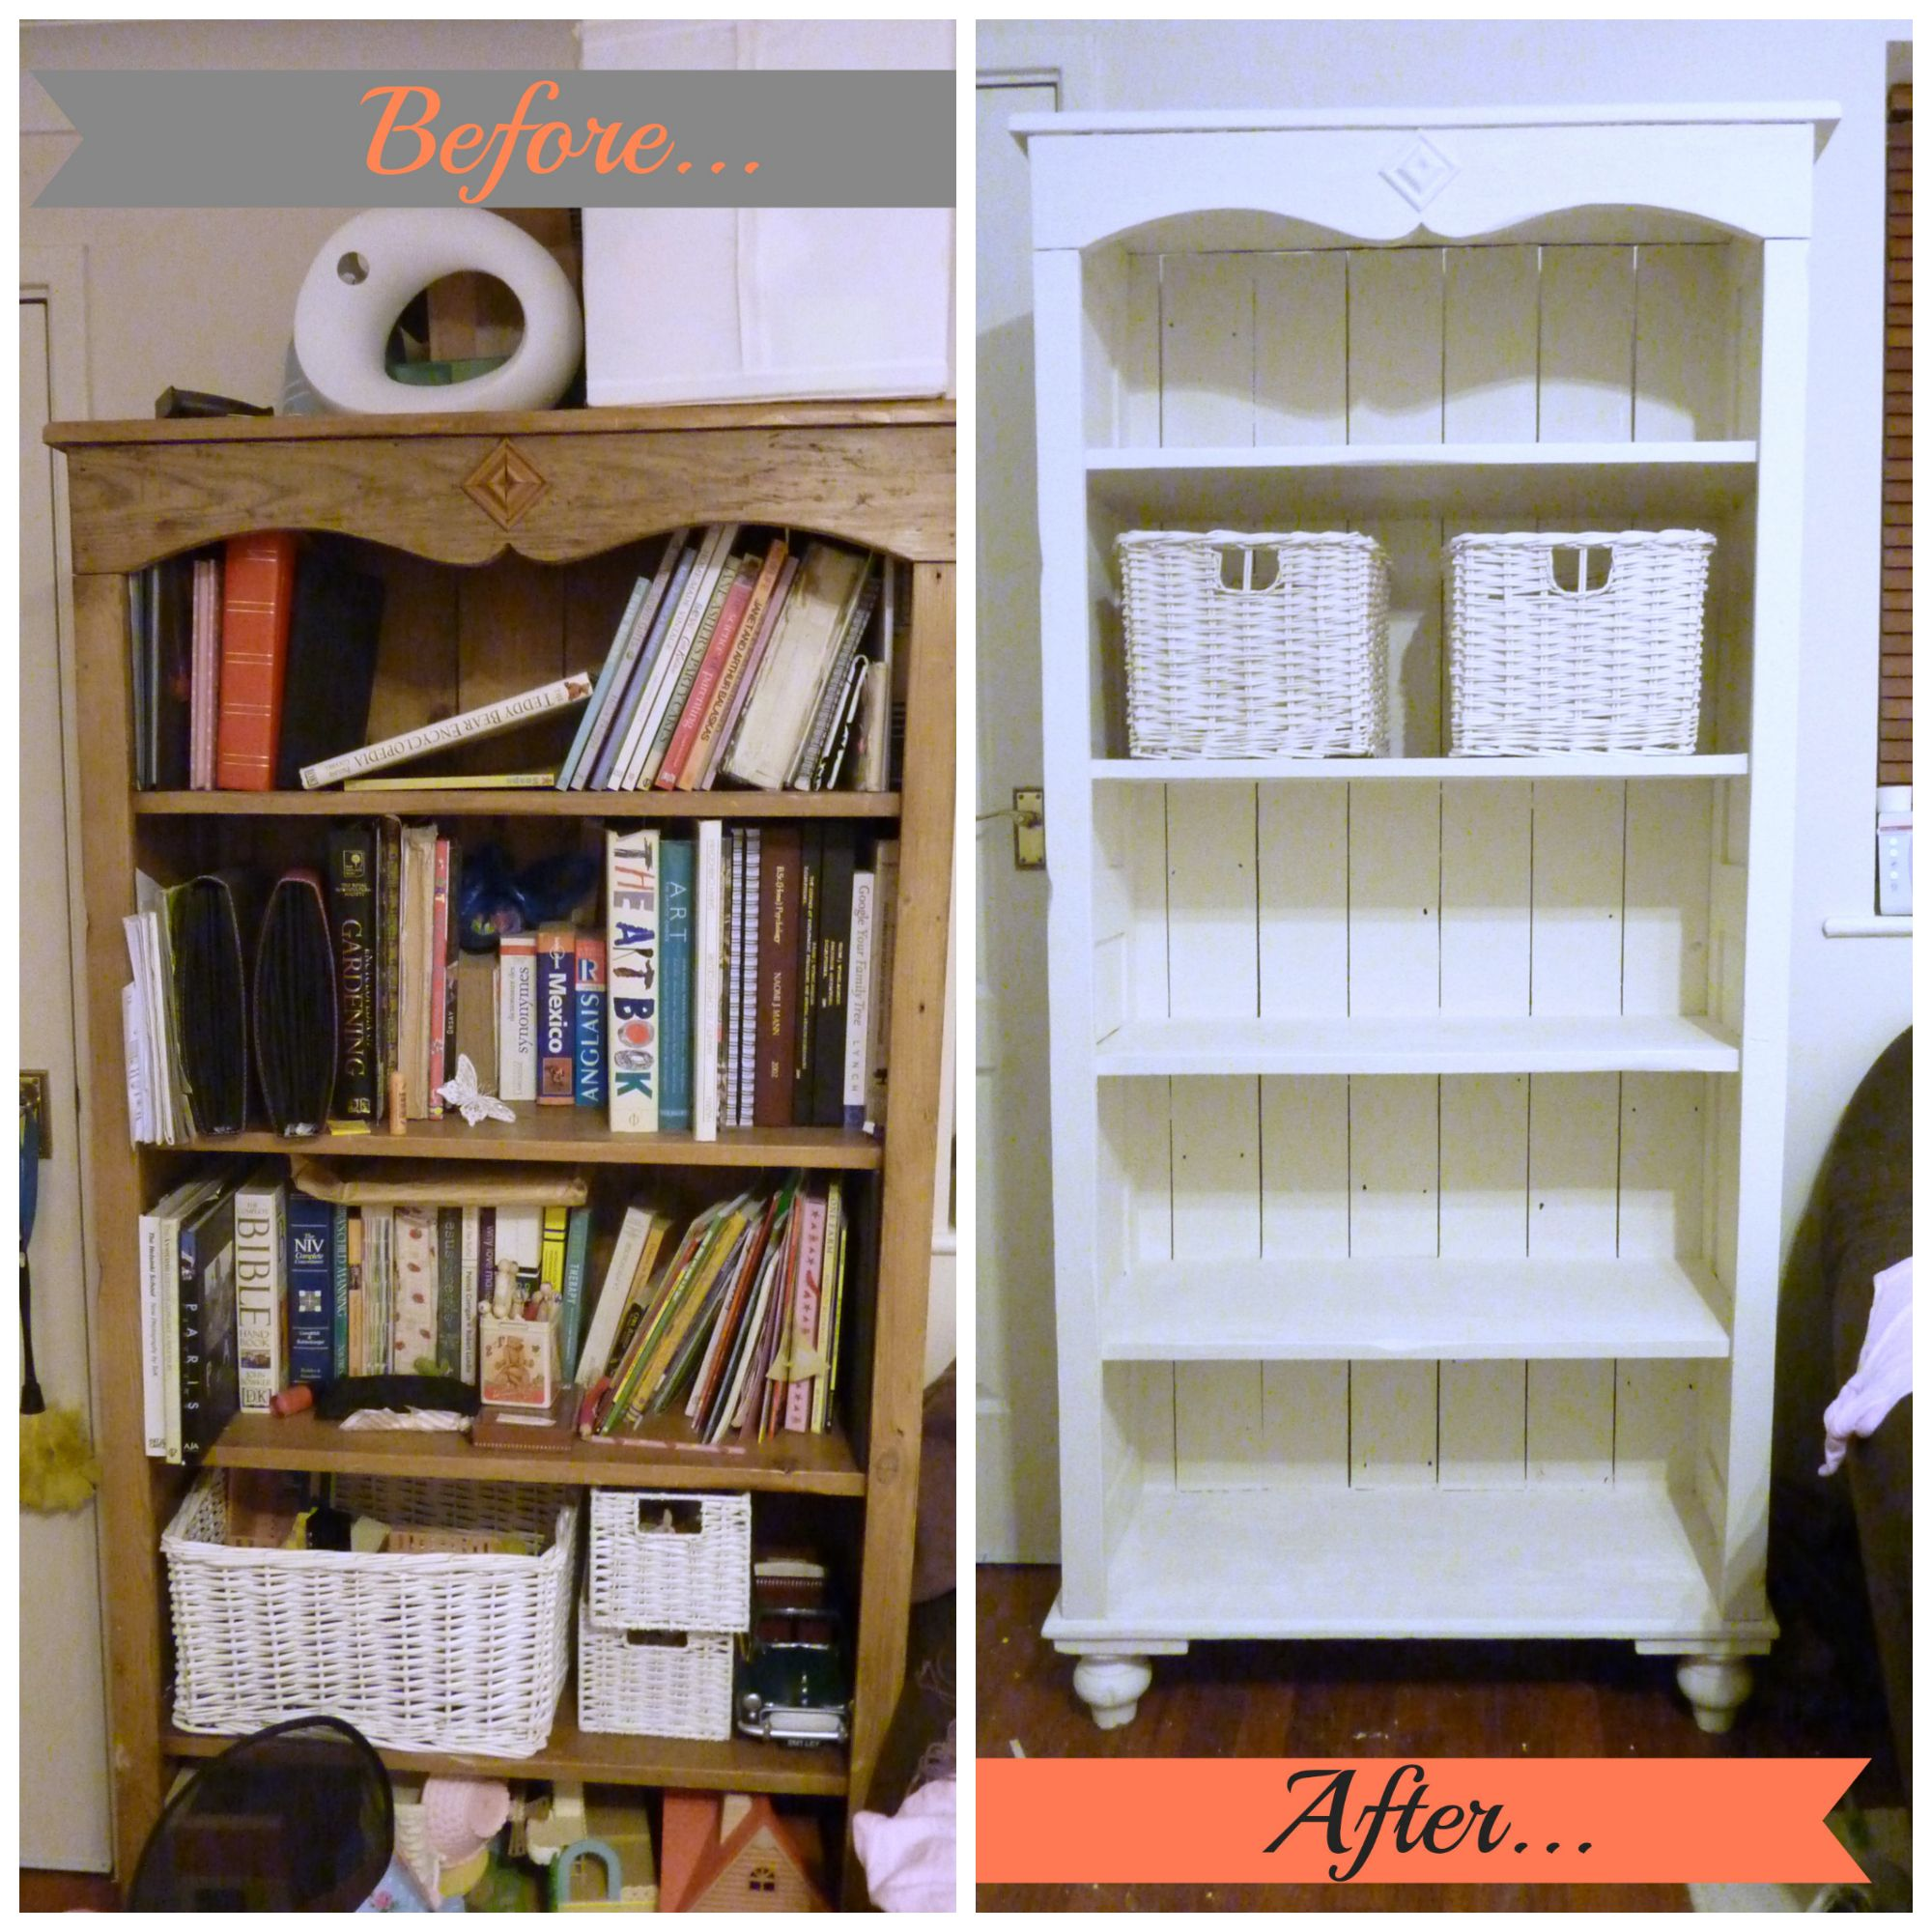 bookcase design decorating interior shelf trends ideas built room ikea rhartenzocom in table sets rhtsukaus living kitchen with bookcases